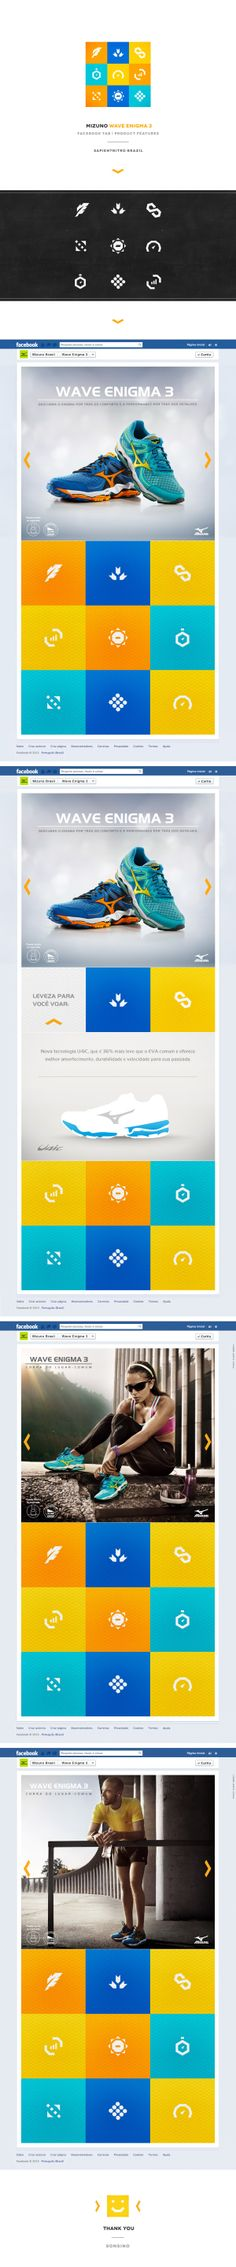 Facebook tab design for the launch of Wave Enigma 3 by Mizuno. Project by SapientNitro Brazil by Raphael Sonsino, via Behance